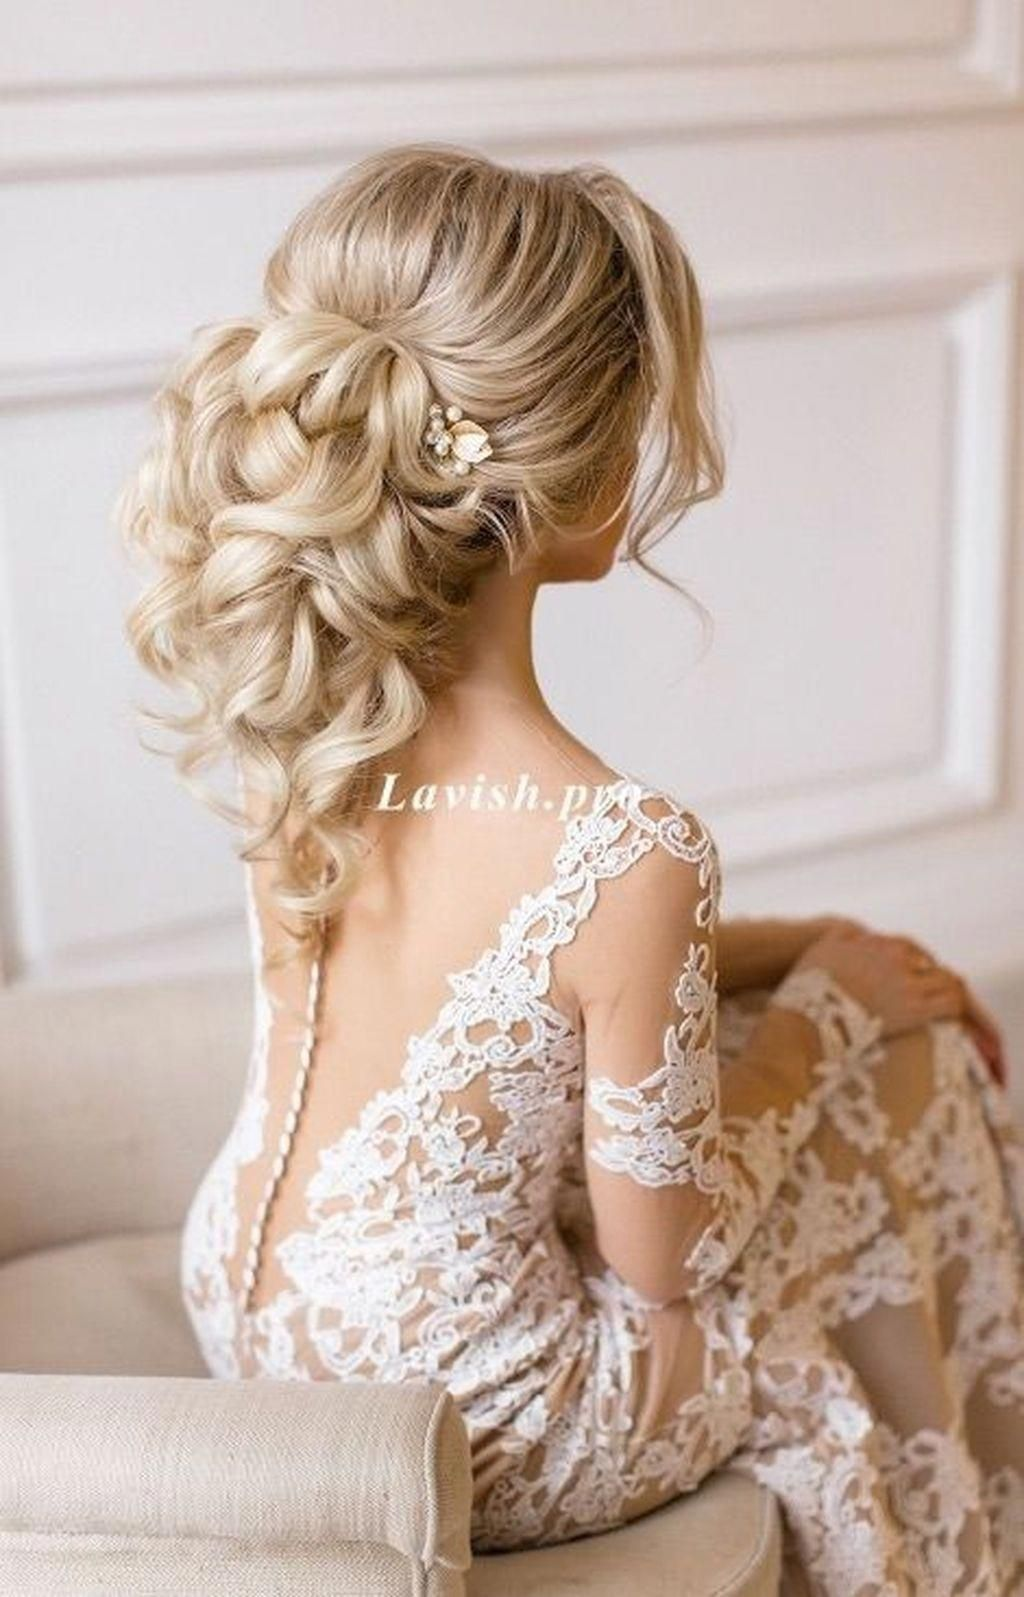 Awesome 20 Romantic Wedding Hairstyles Ideas Every Women Will Love Weddinghairstylesid Unique Wedding Hairstyles Romantic Wedding Hair Elegant Wedding Hair